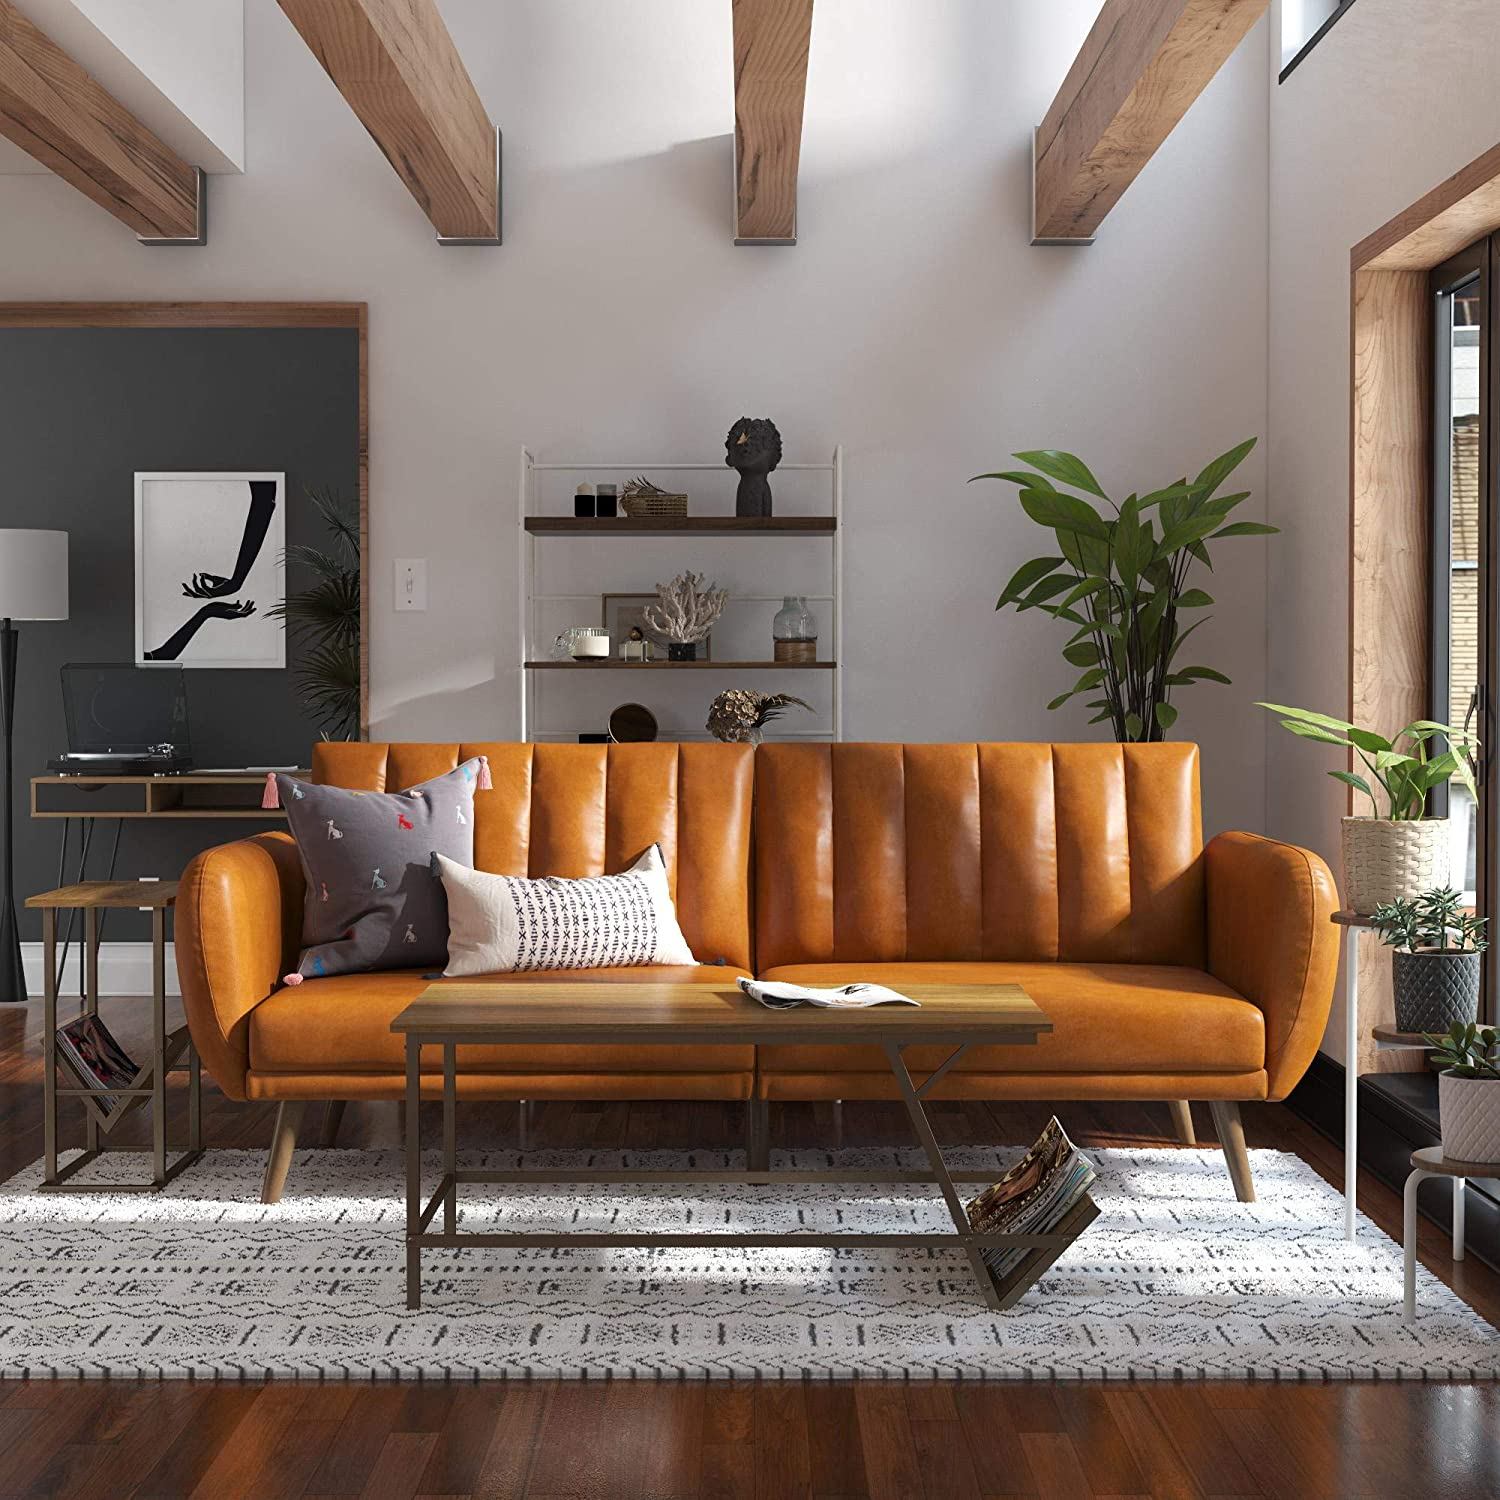 Novogratz Brittany Futon, Convertible Sofa & Couch, Camel Throughout Brittany Sectional Futon Sofas (View 4 of 15)